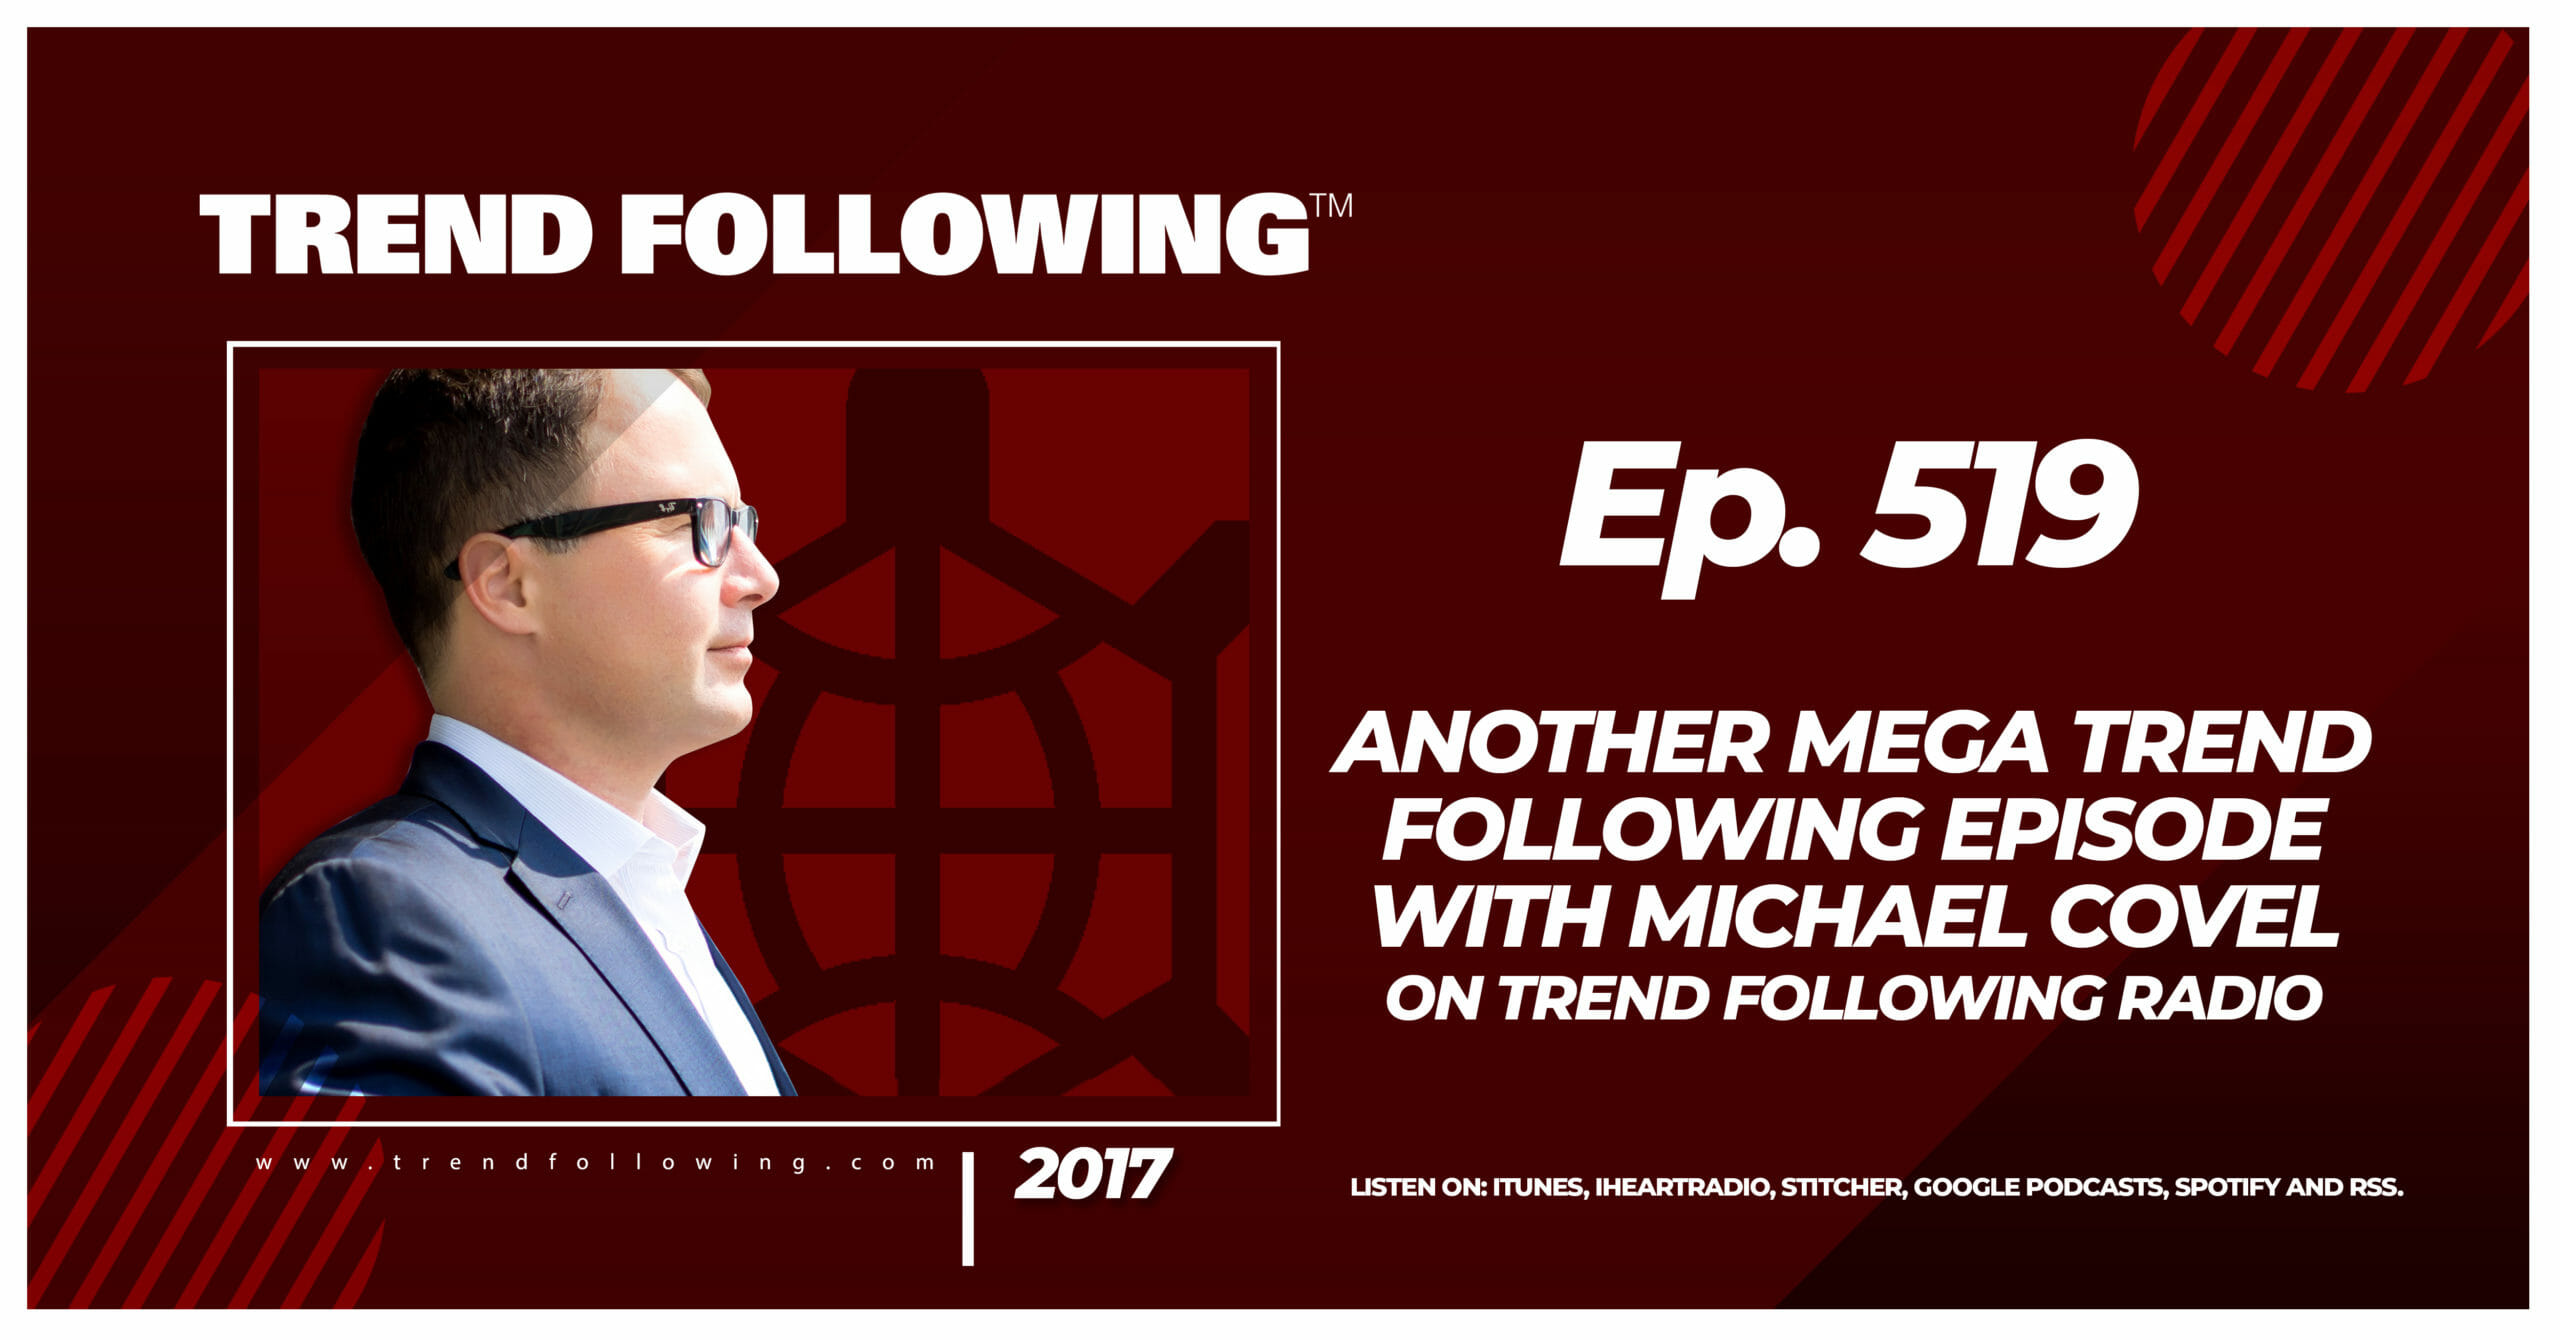 Another Mega Trend Following Episode with Michael Covel on Trend Following Radio